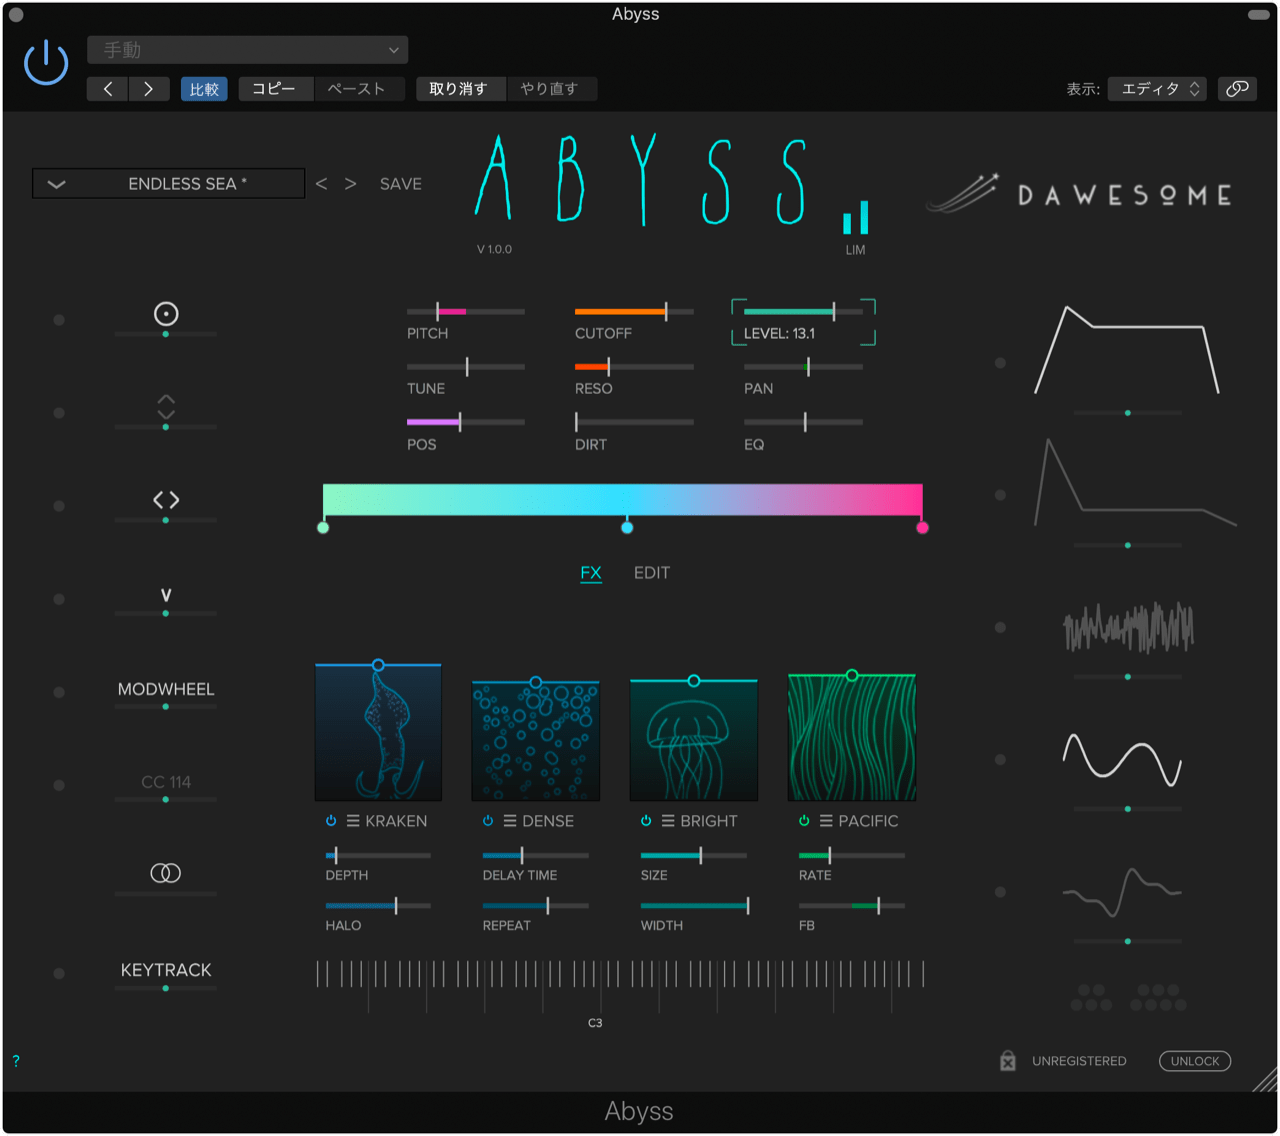 Abyss visual synthesizer, VST3, AU - Tracktion Presents